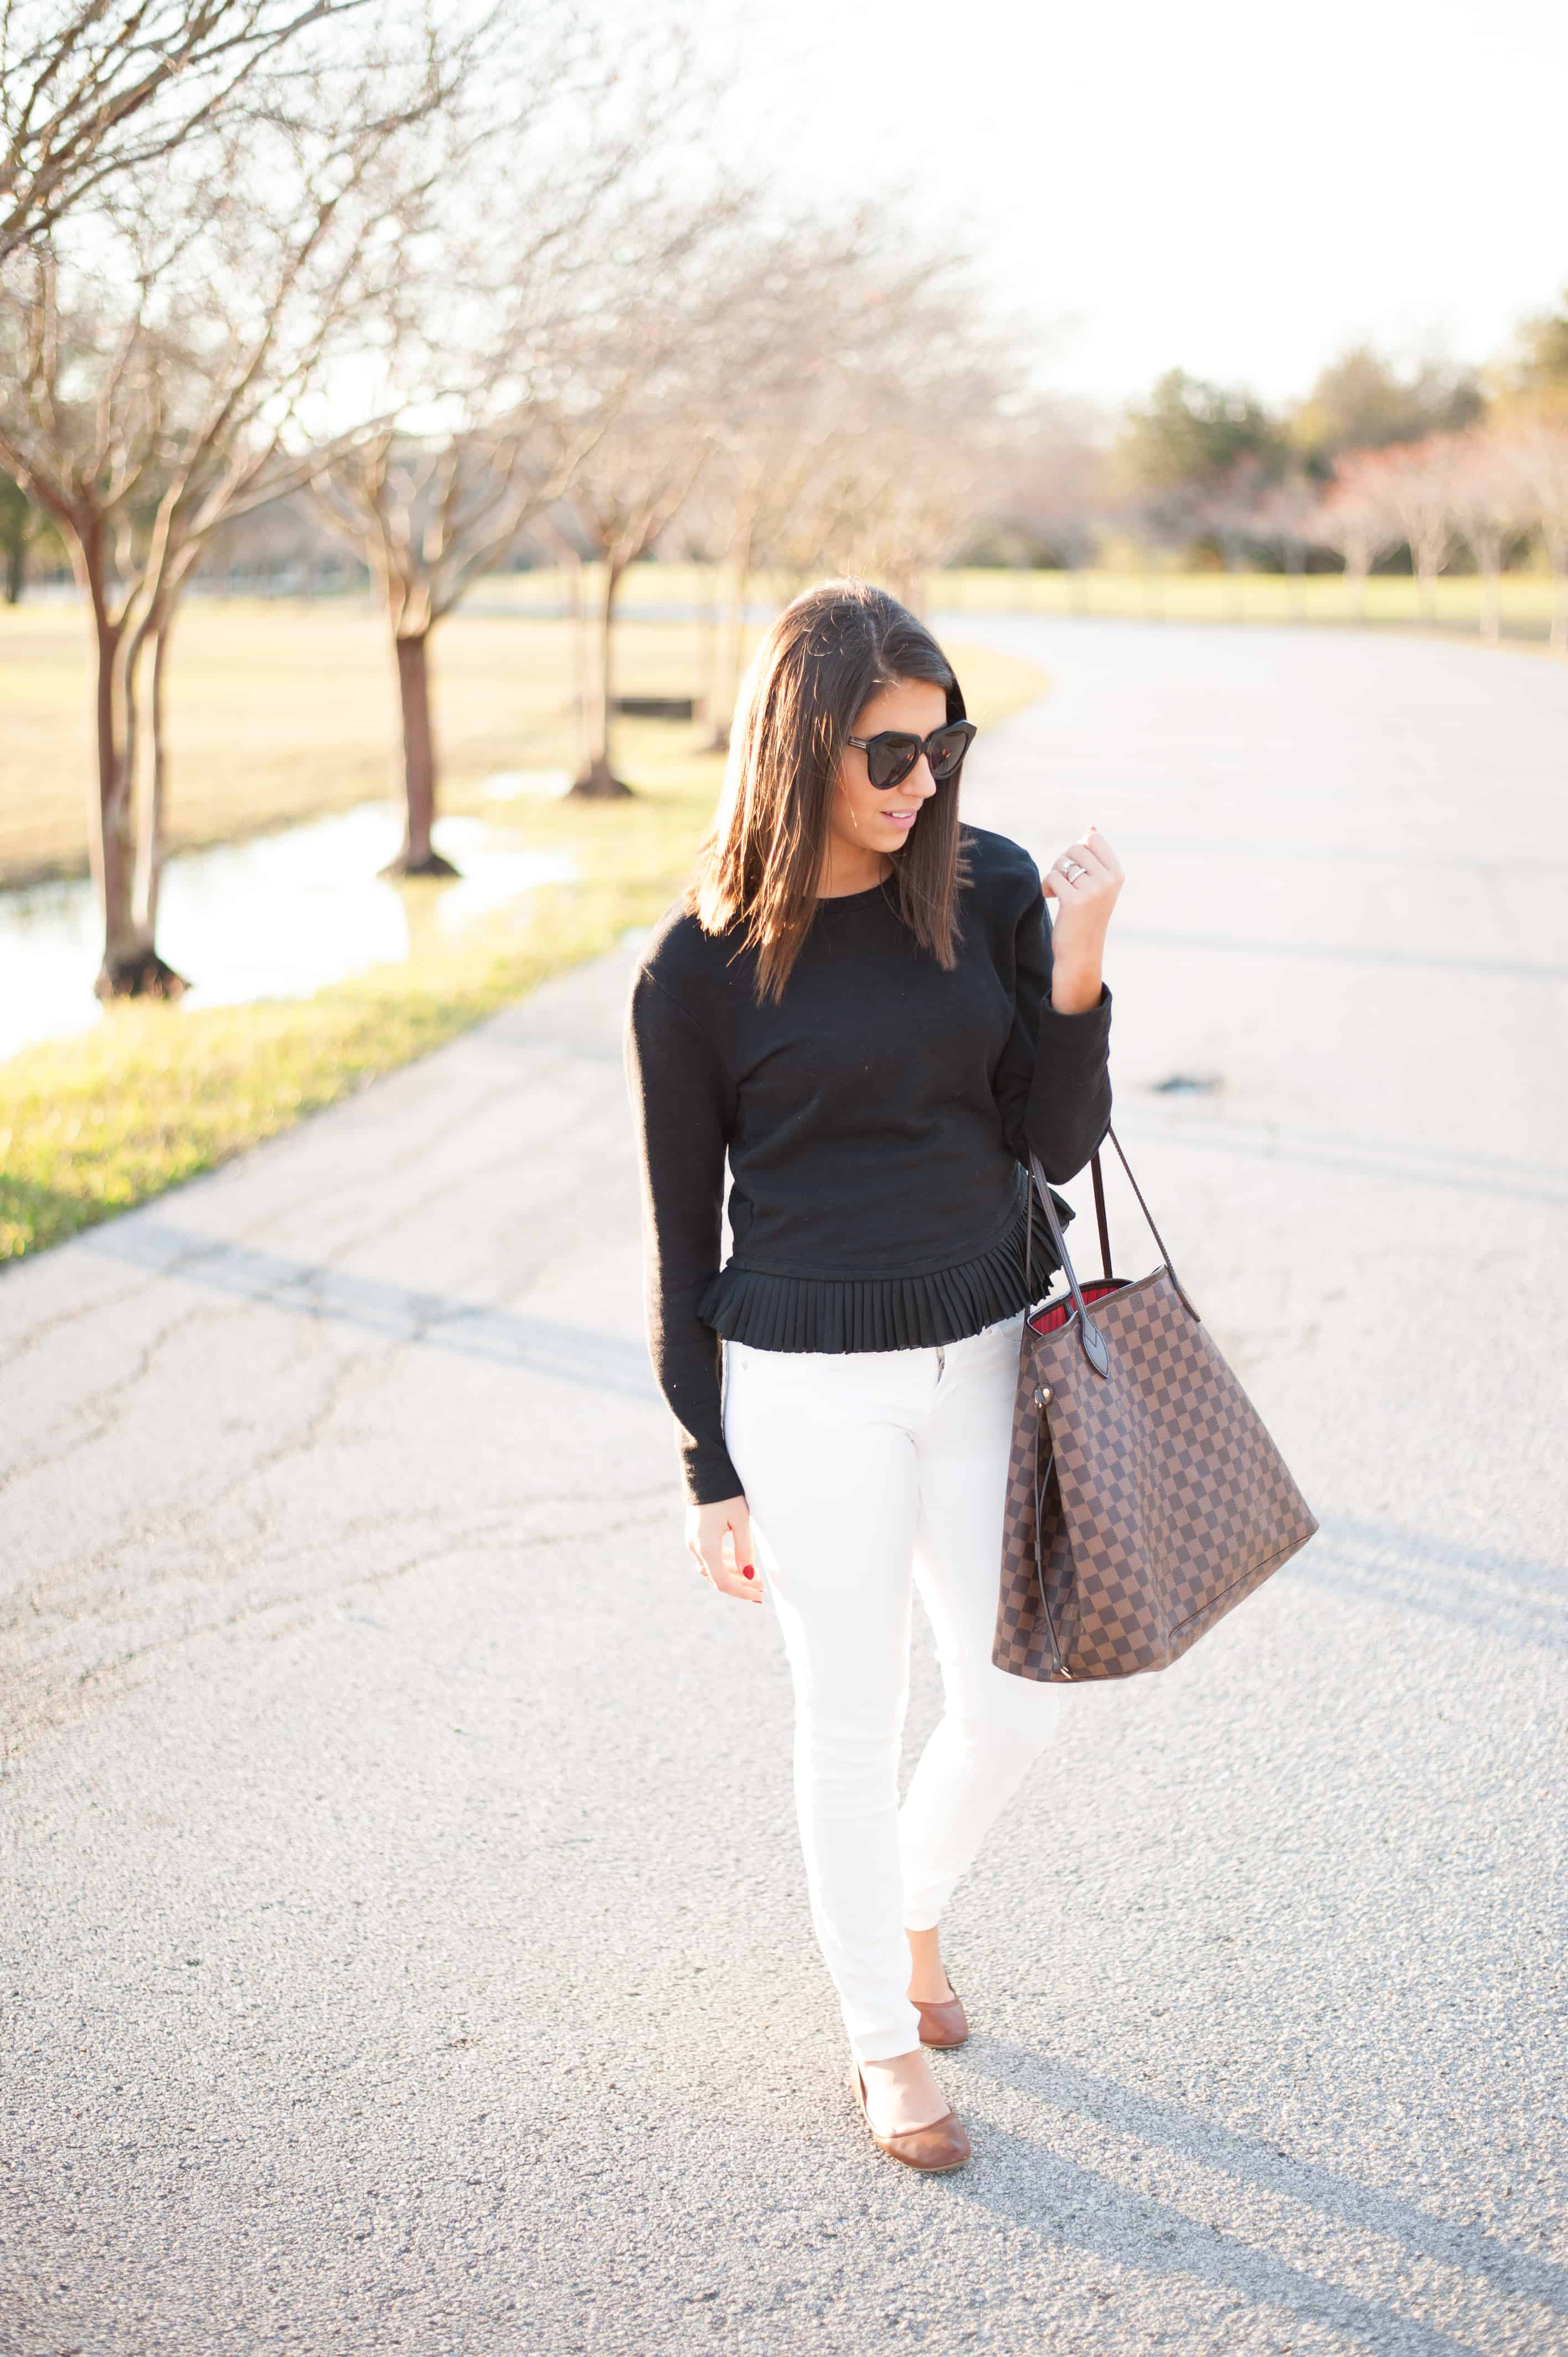 dress_up_buttercup_dede_raad_fashion_blogger_houston (4 of 8)